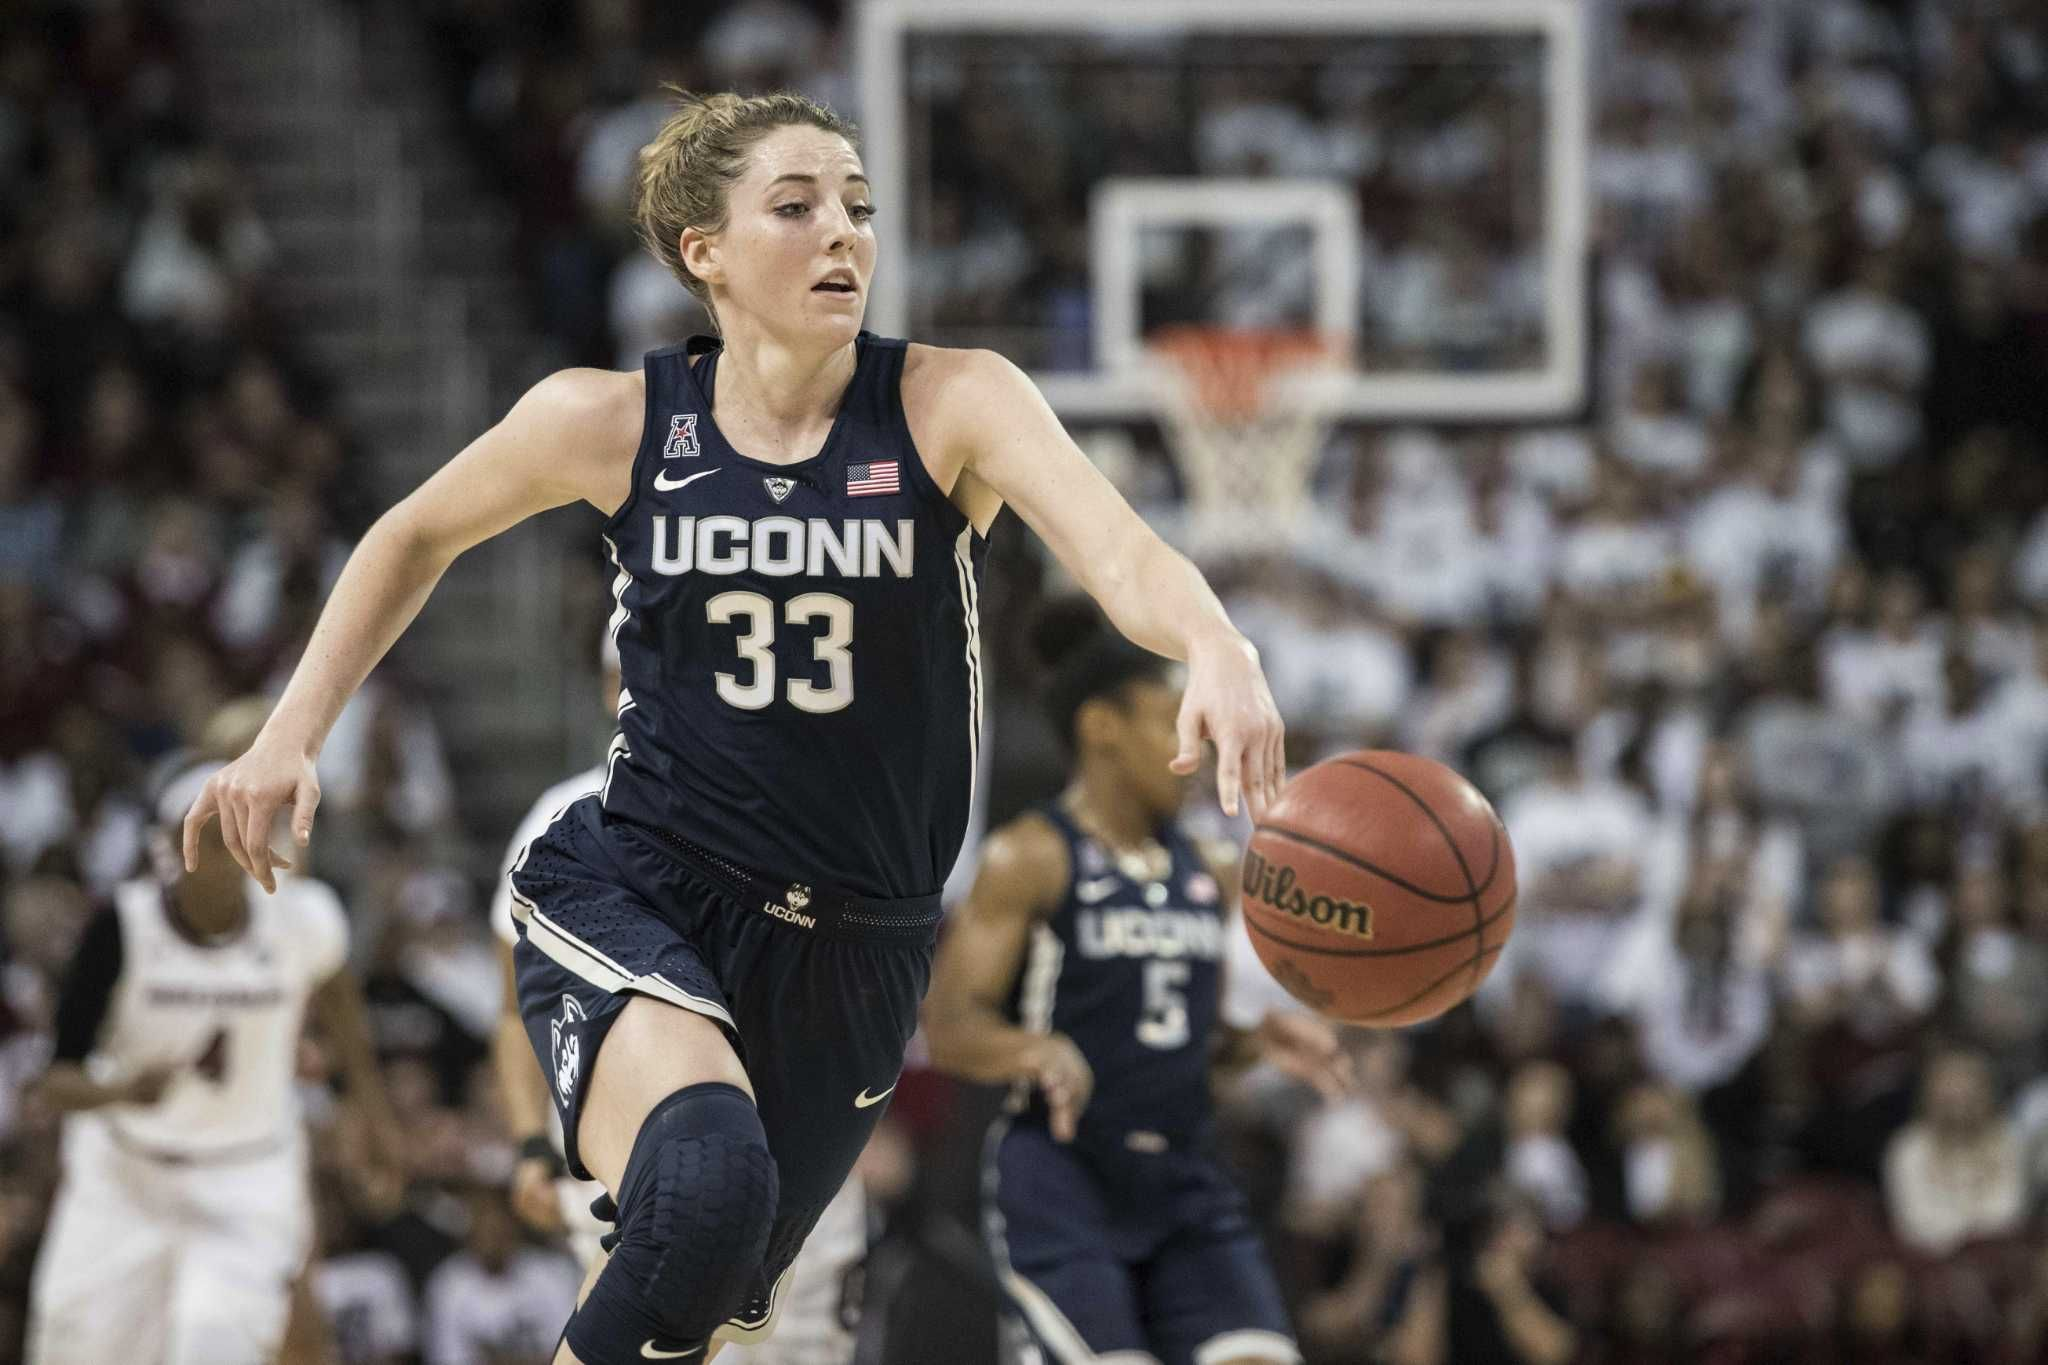 Columbia S C Kia Nurse Is In The Midst Of Her Best Collegiate Season And Gabby Williams Is The Reigning Nat Uconn Womens Basketball Uconn Womens Basketball